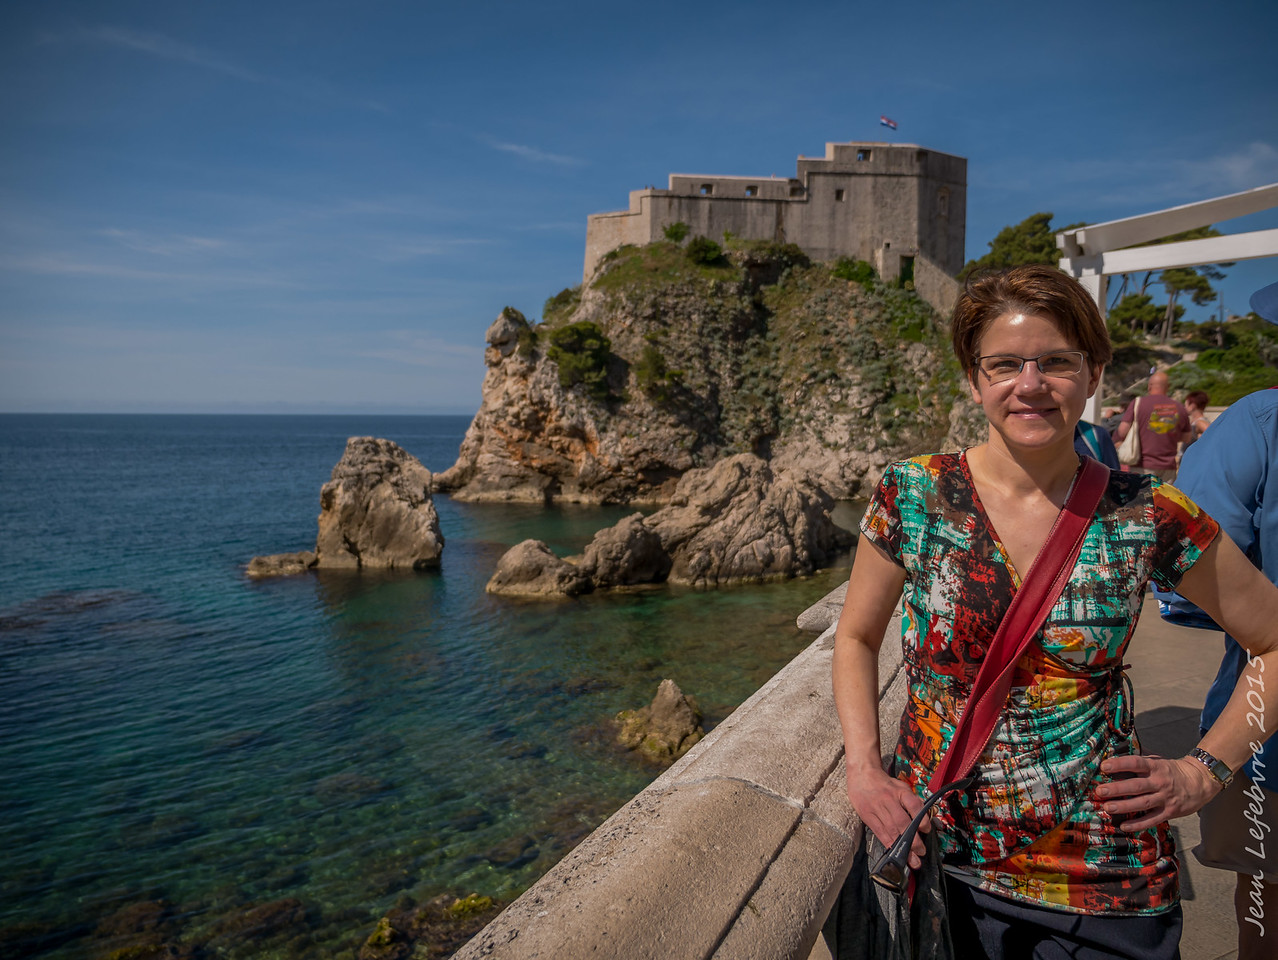 Cathy in Dubrovnik